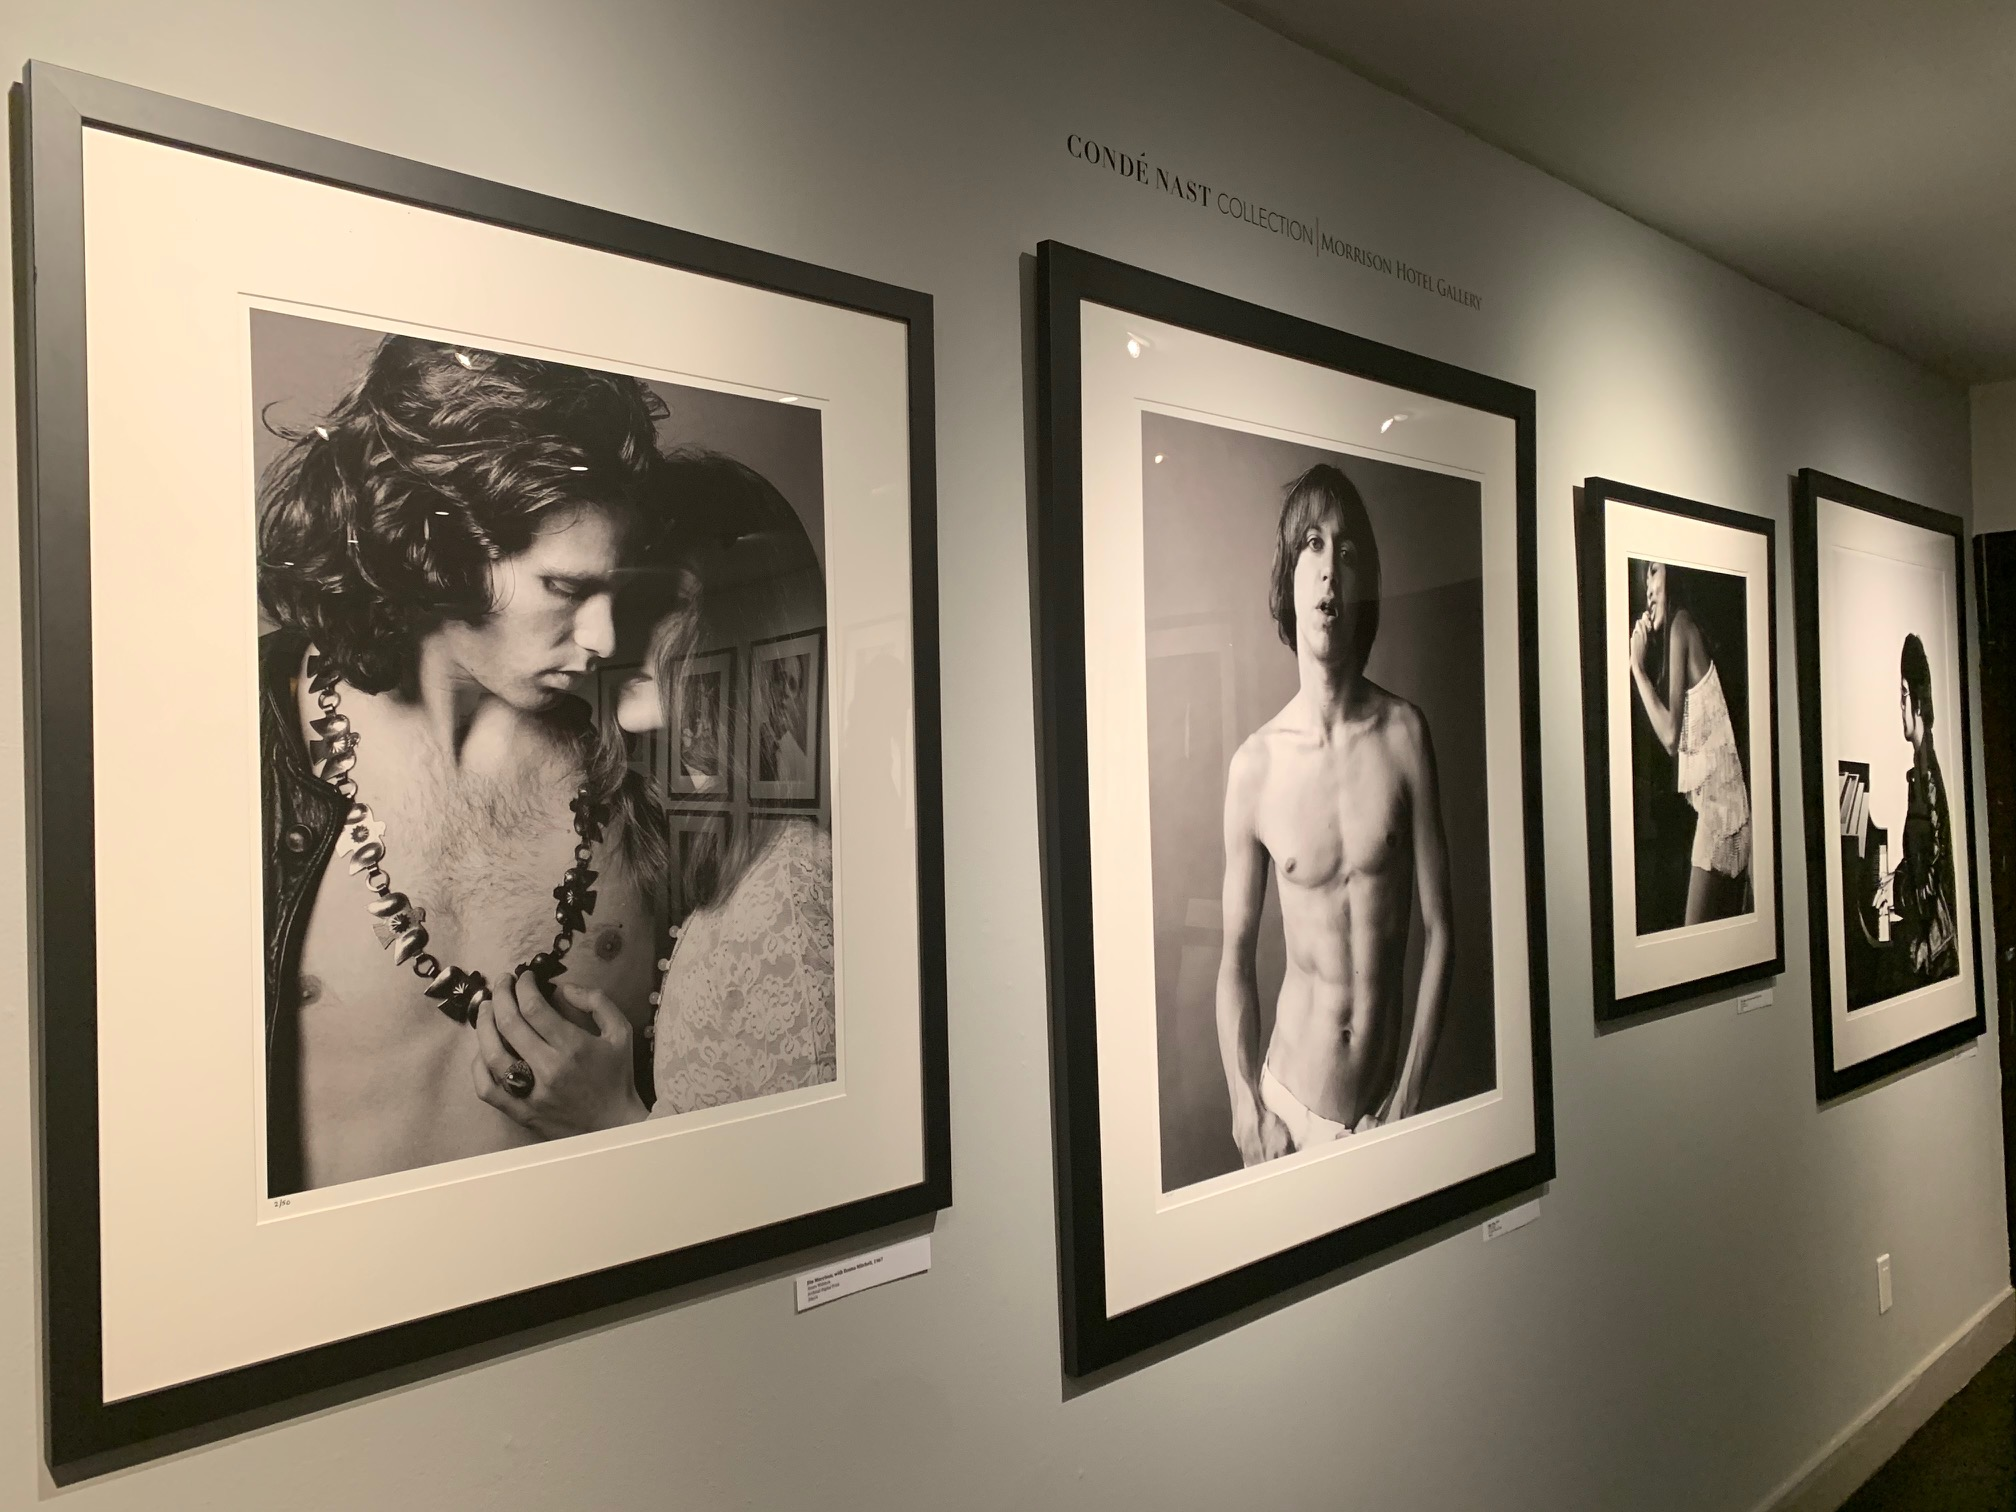 timothy white, morrison hotel gallery, conde nast